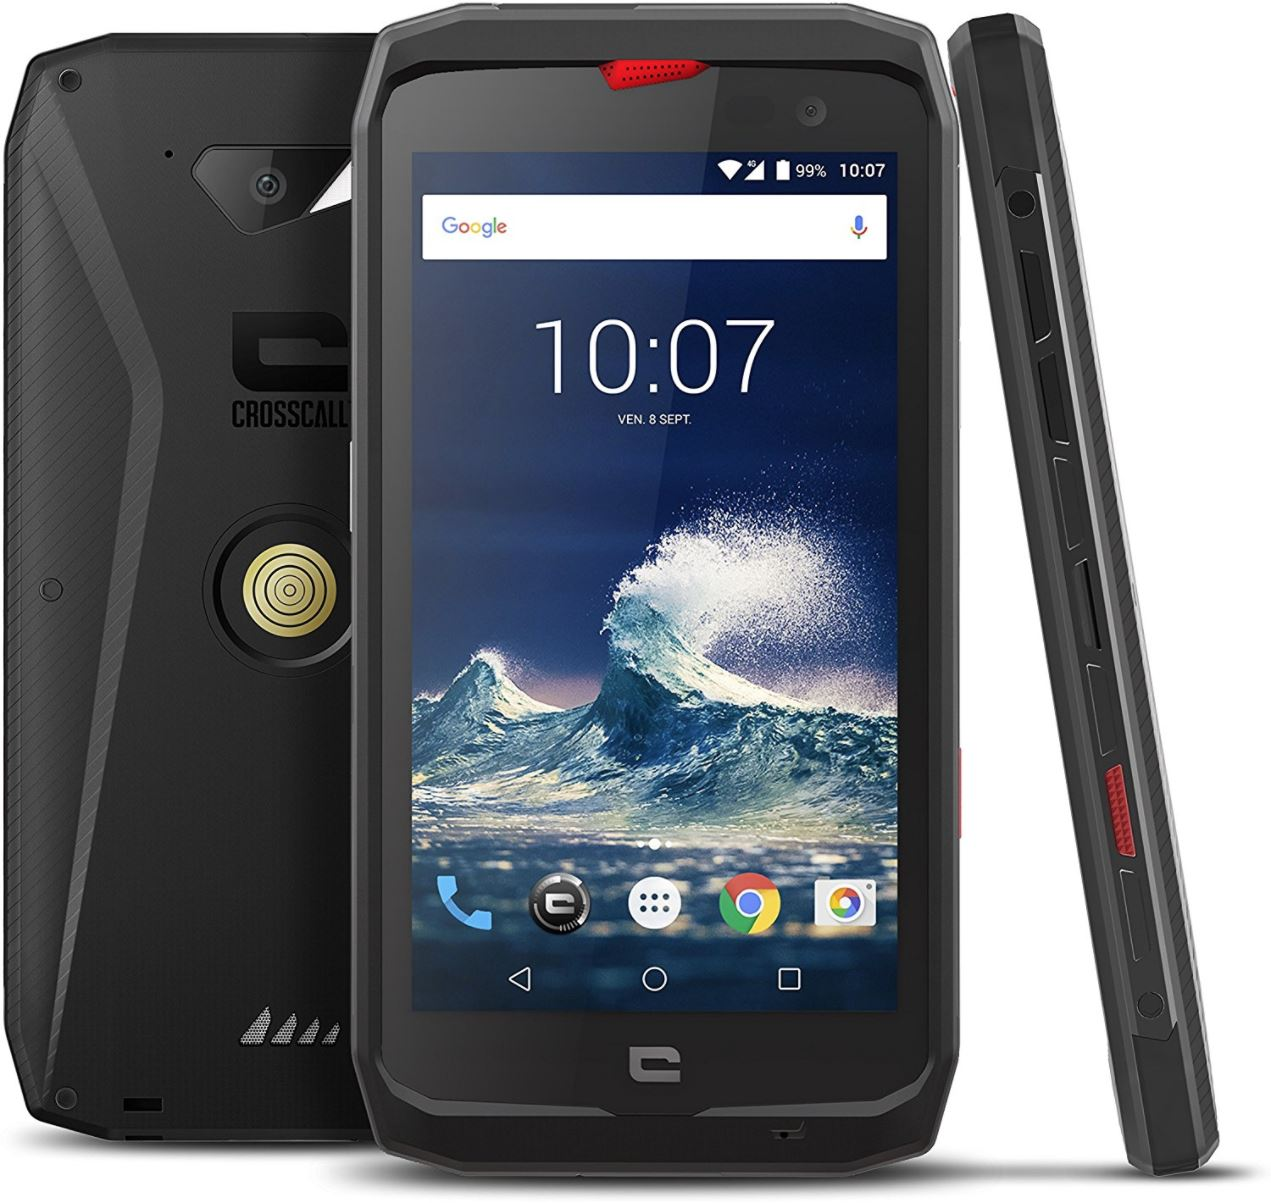 Crosscall Action-X3 Outdoor Smartphone